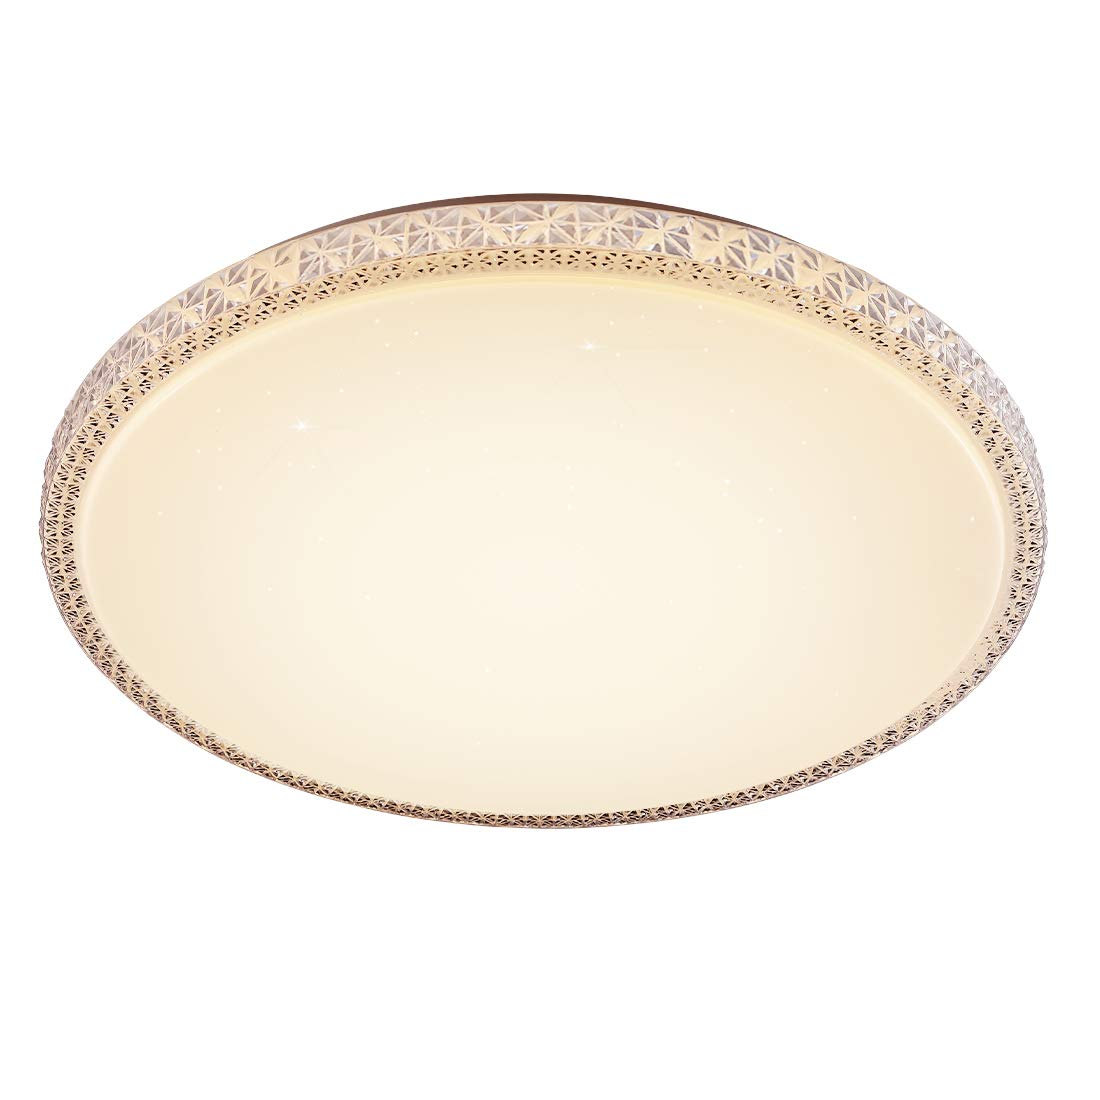 """CORSO 20"""" LED Starlight Flush Mount LED Ceiling Lights Round Fixture, Extra Large Modern Close to Ceiling Lamp for Residential/Commercial, 48W(250W Equivalent) 3000K Warm White, Plastic Crystal Finish"""